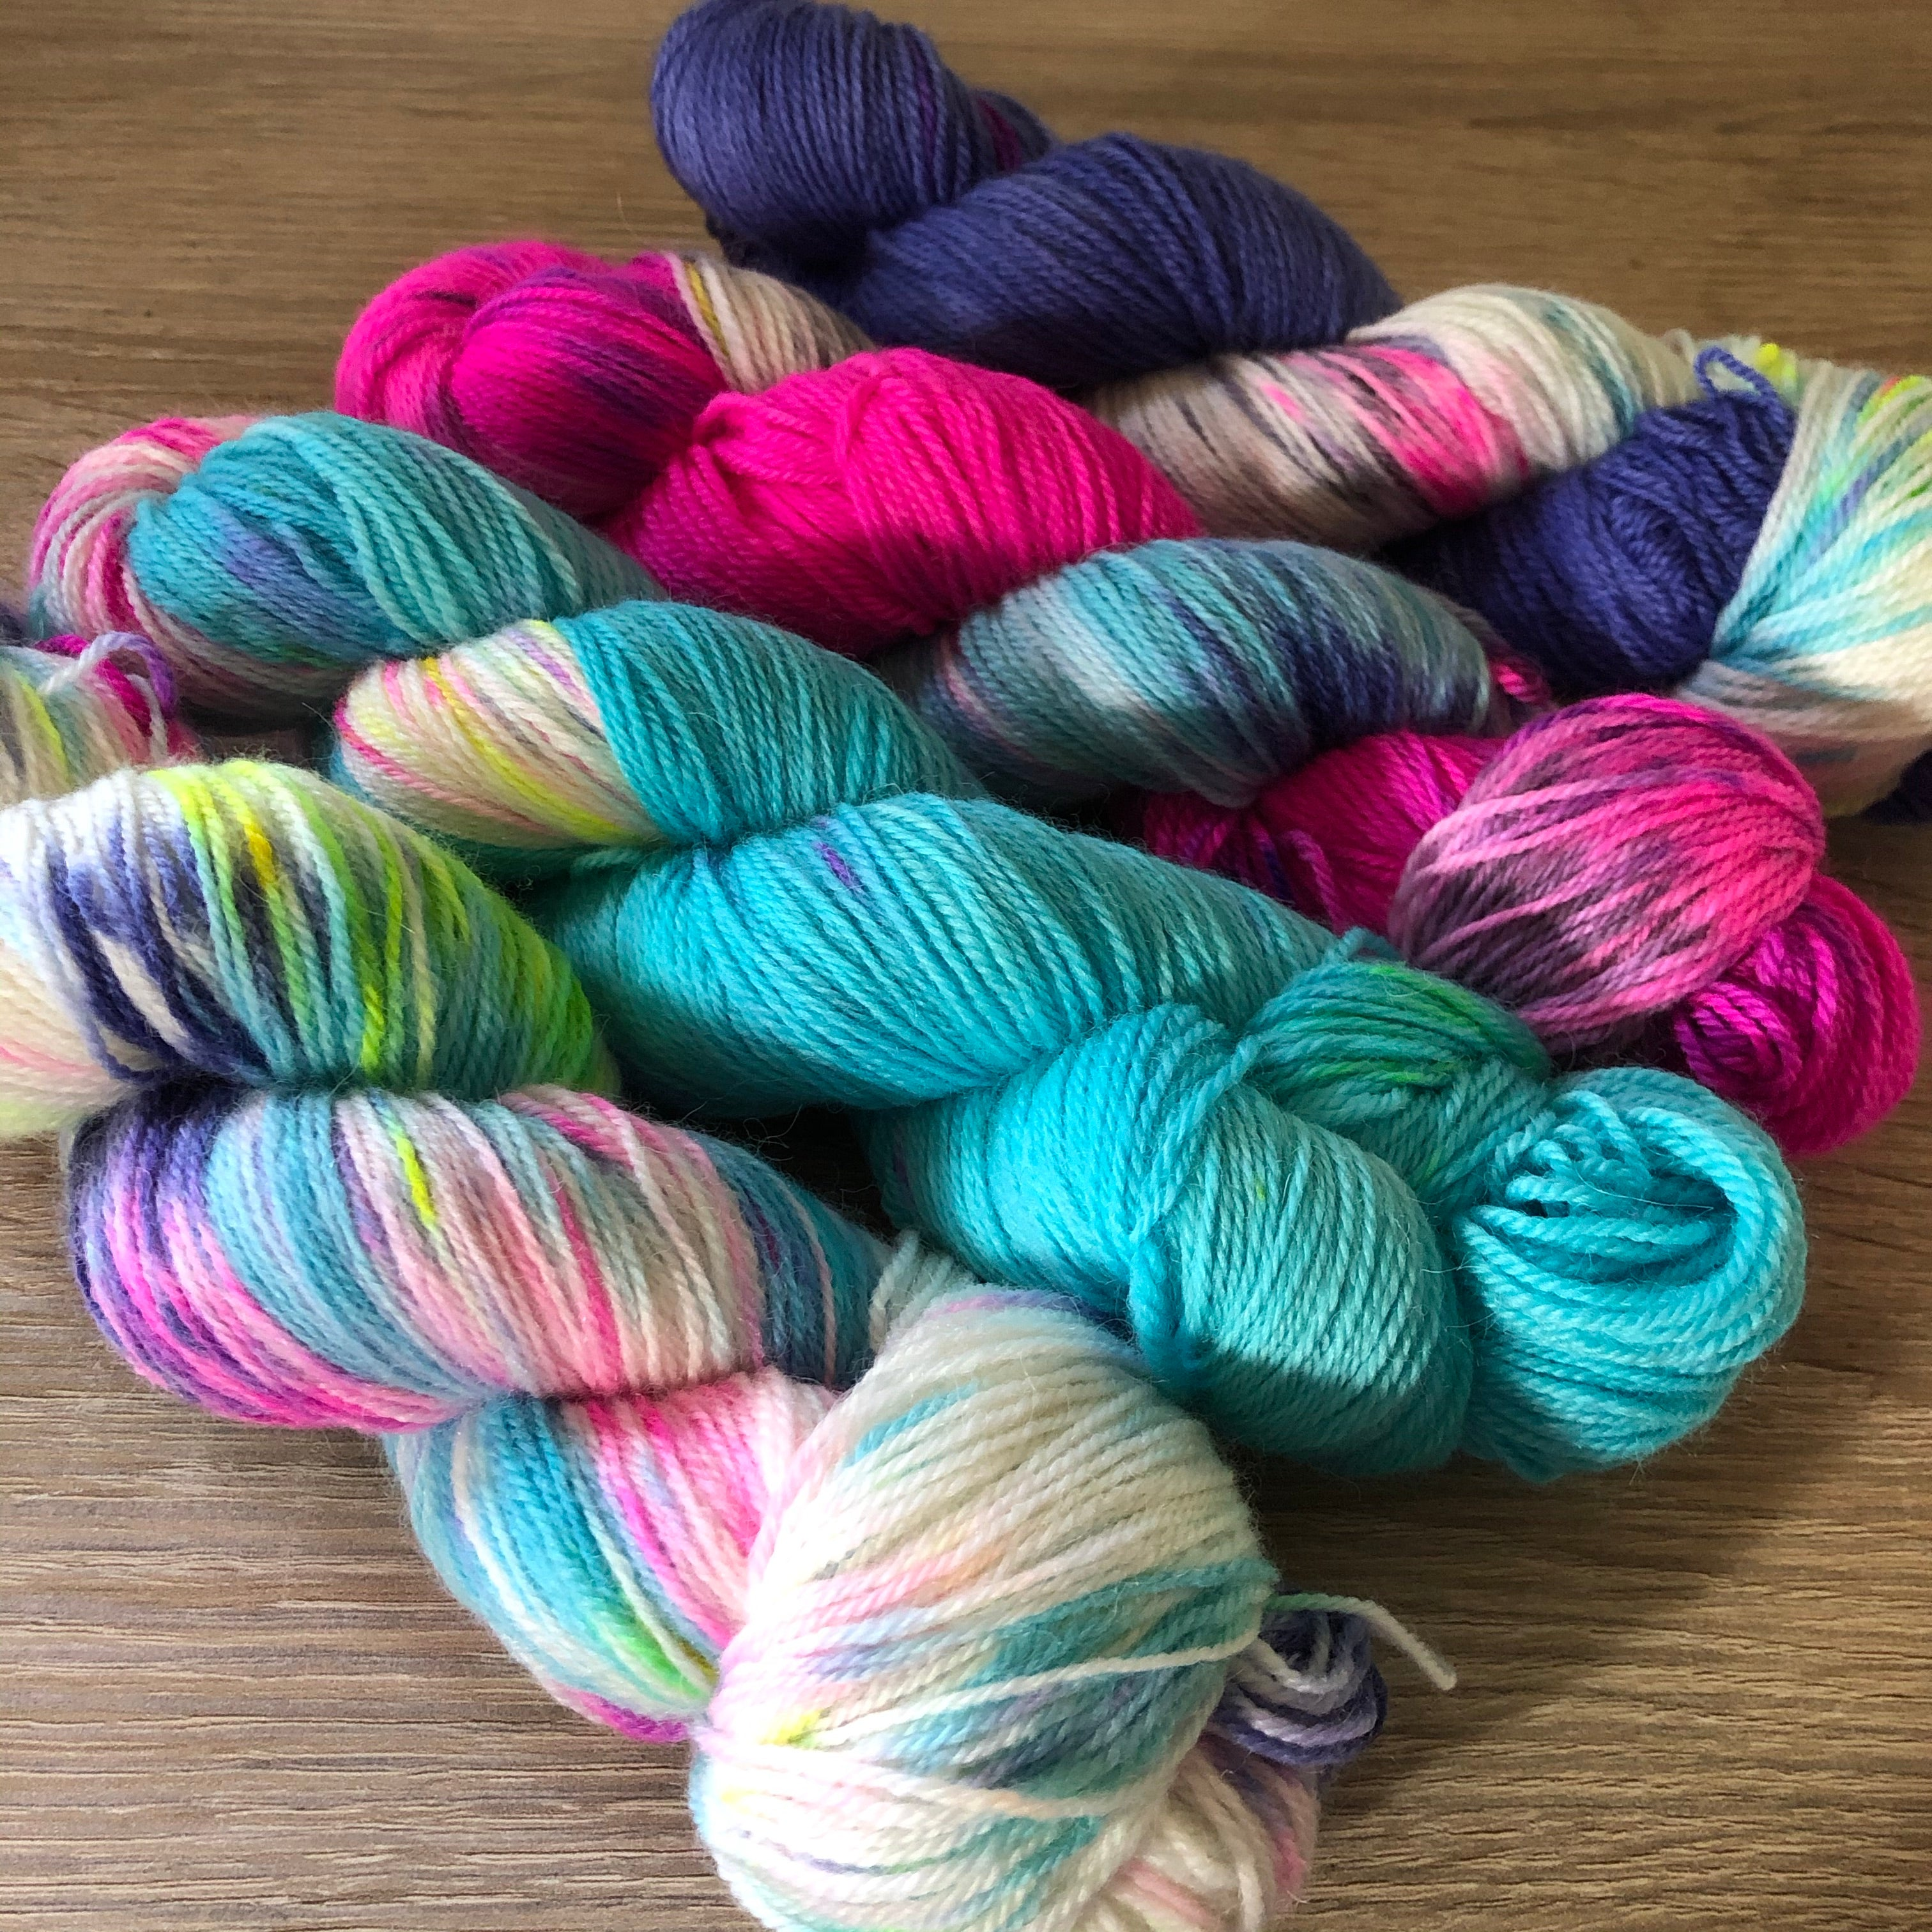 Cupcake Fade Kit - Dreamy NZ Grown Milled and Dyed Polwarth Alpaca